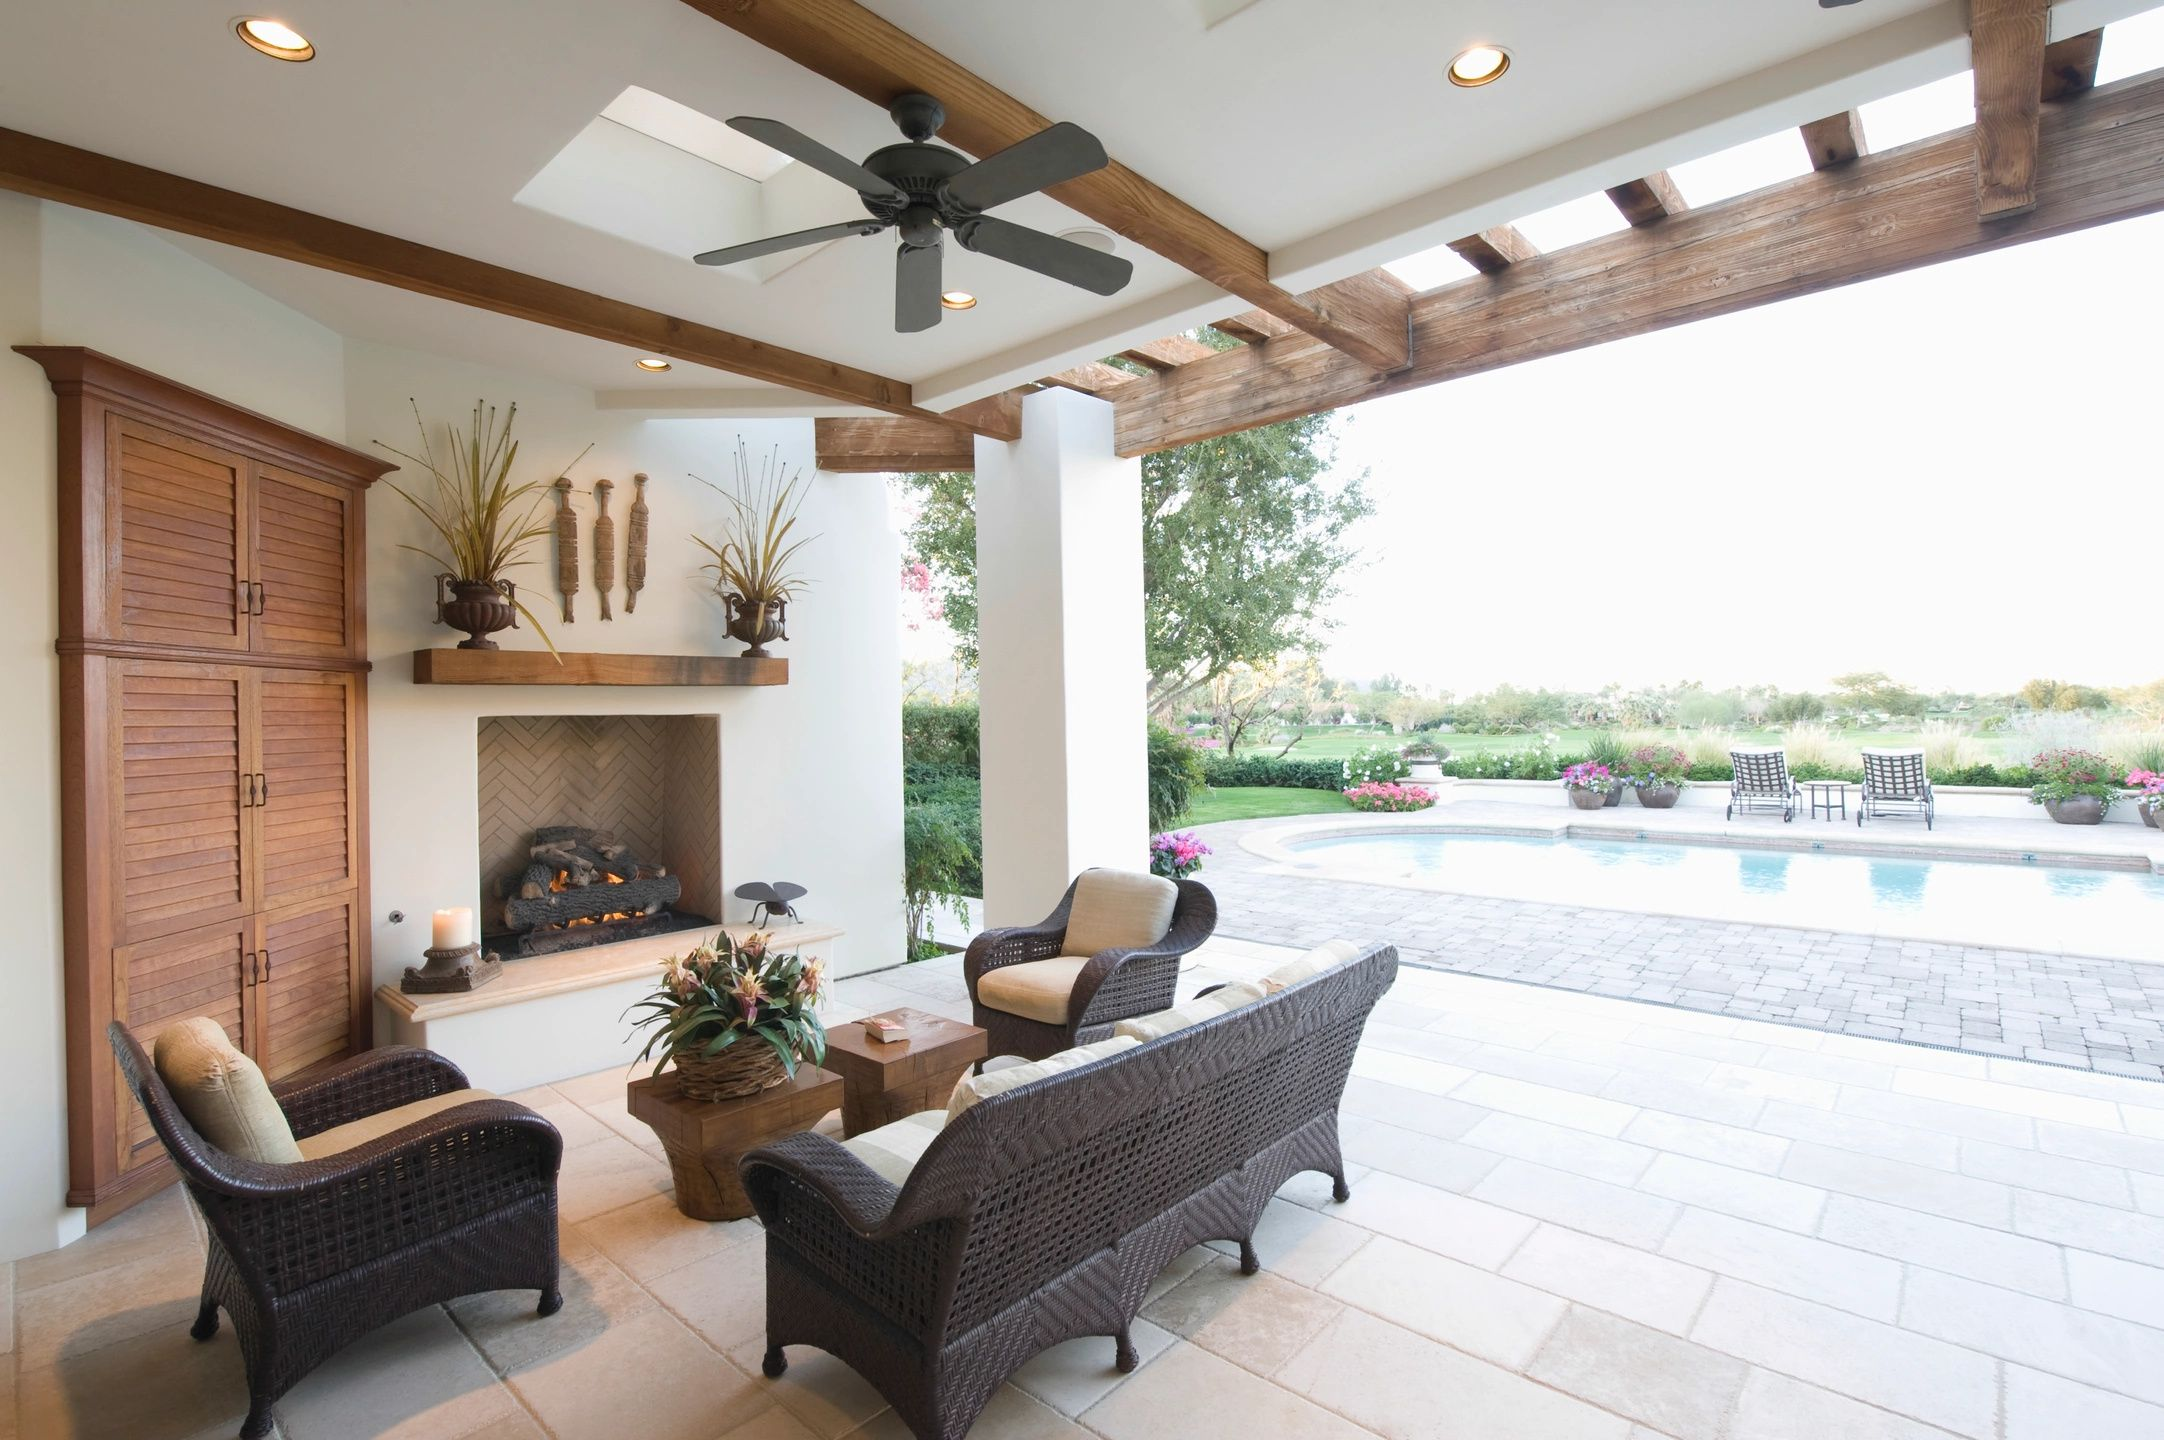 Simple ideas to boost your home's value